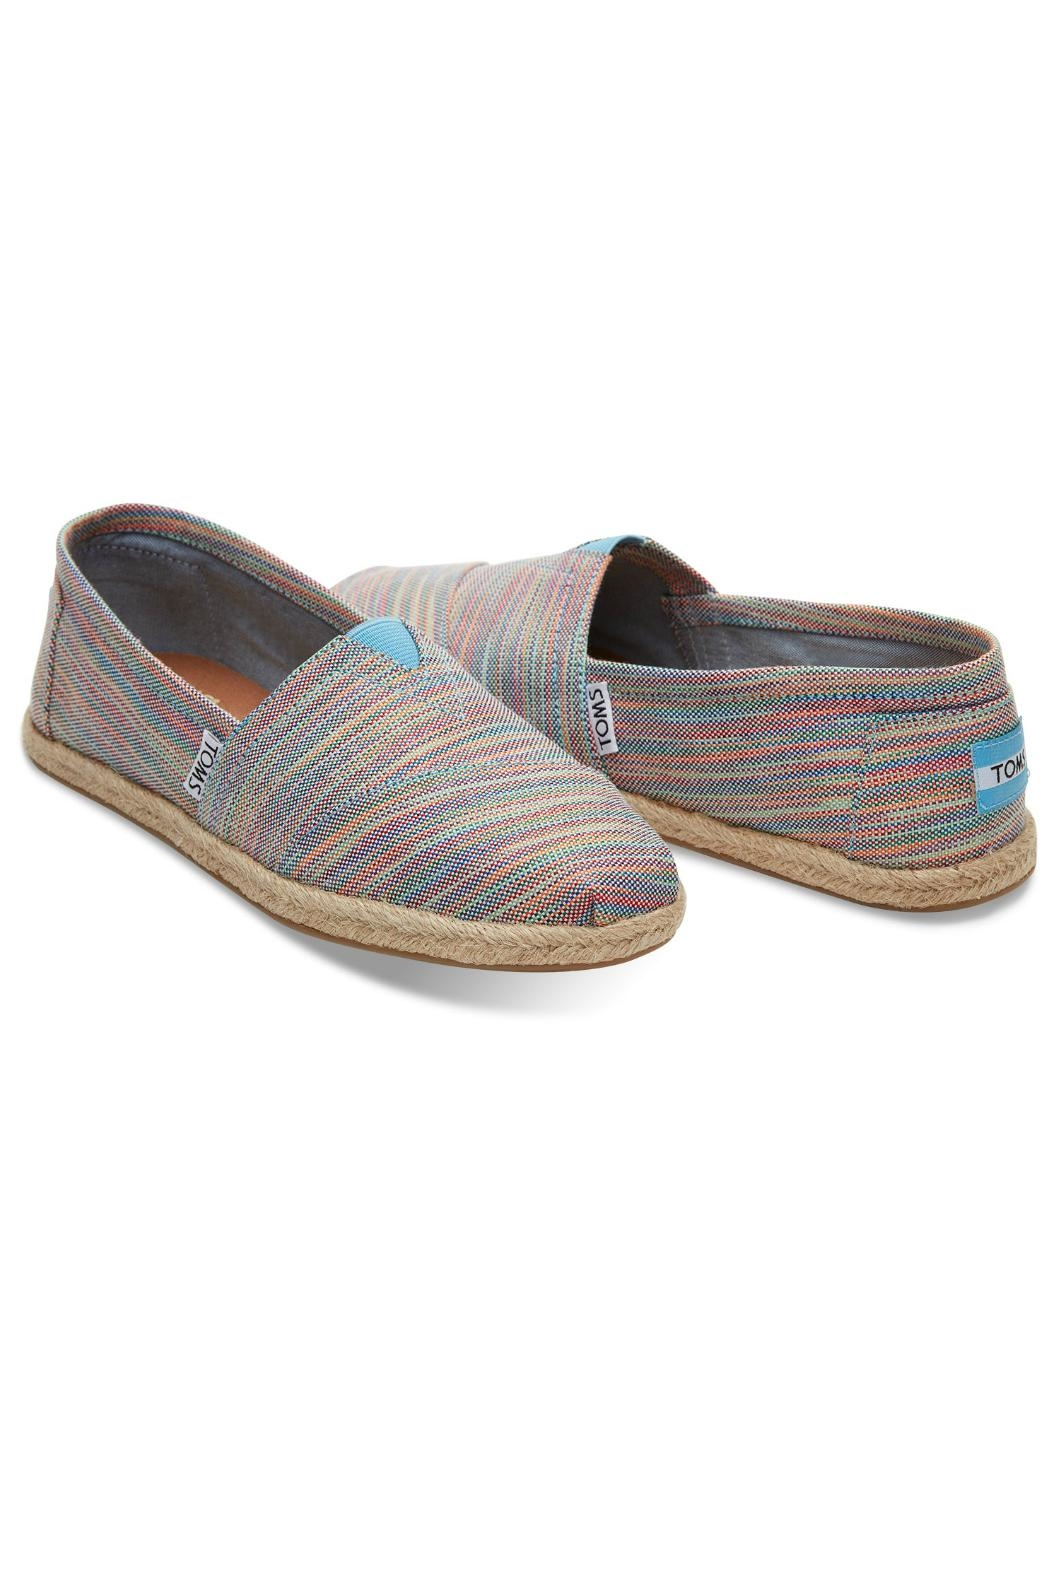 TOMS Rainbow Espadrille Shoes - Front Full Image